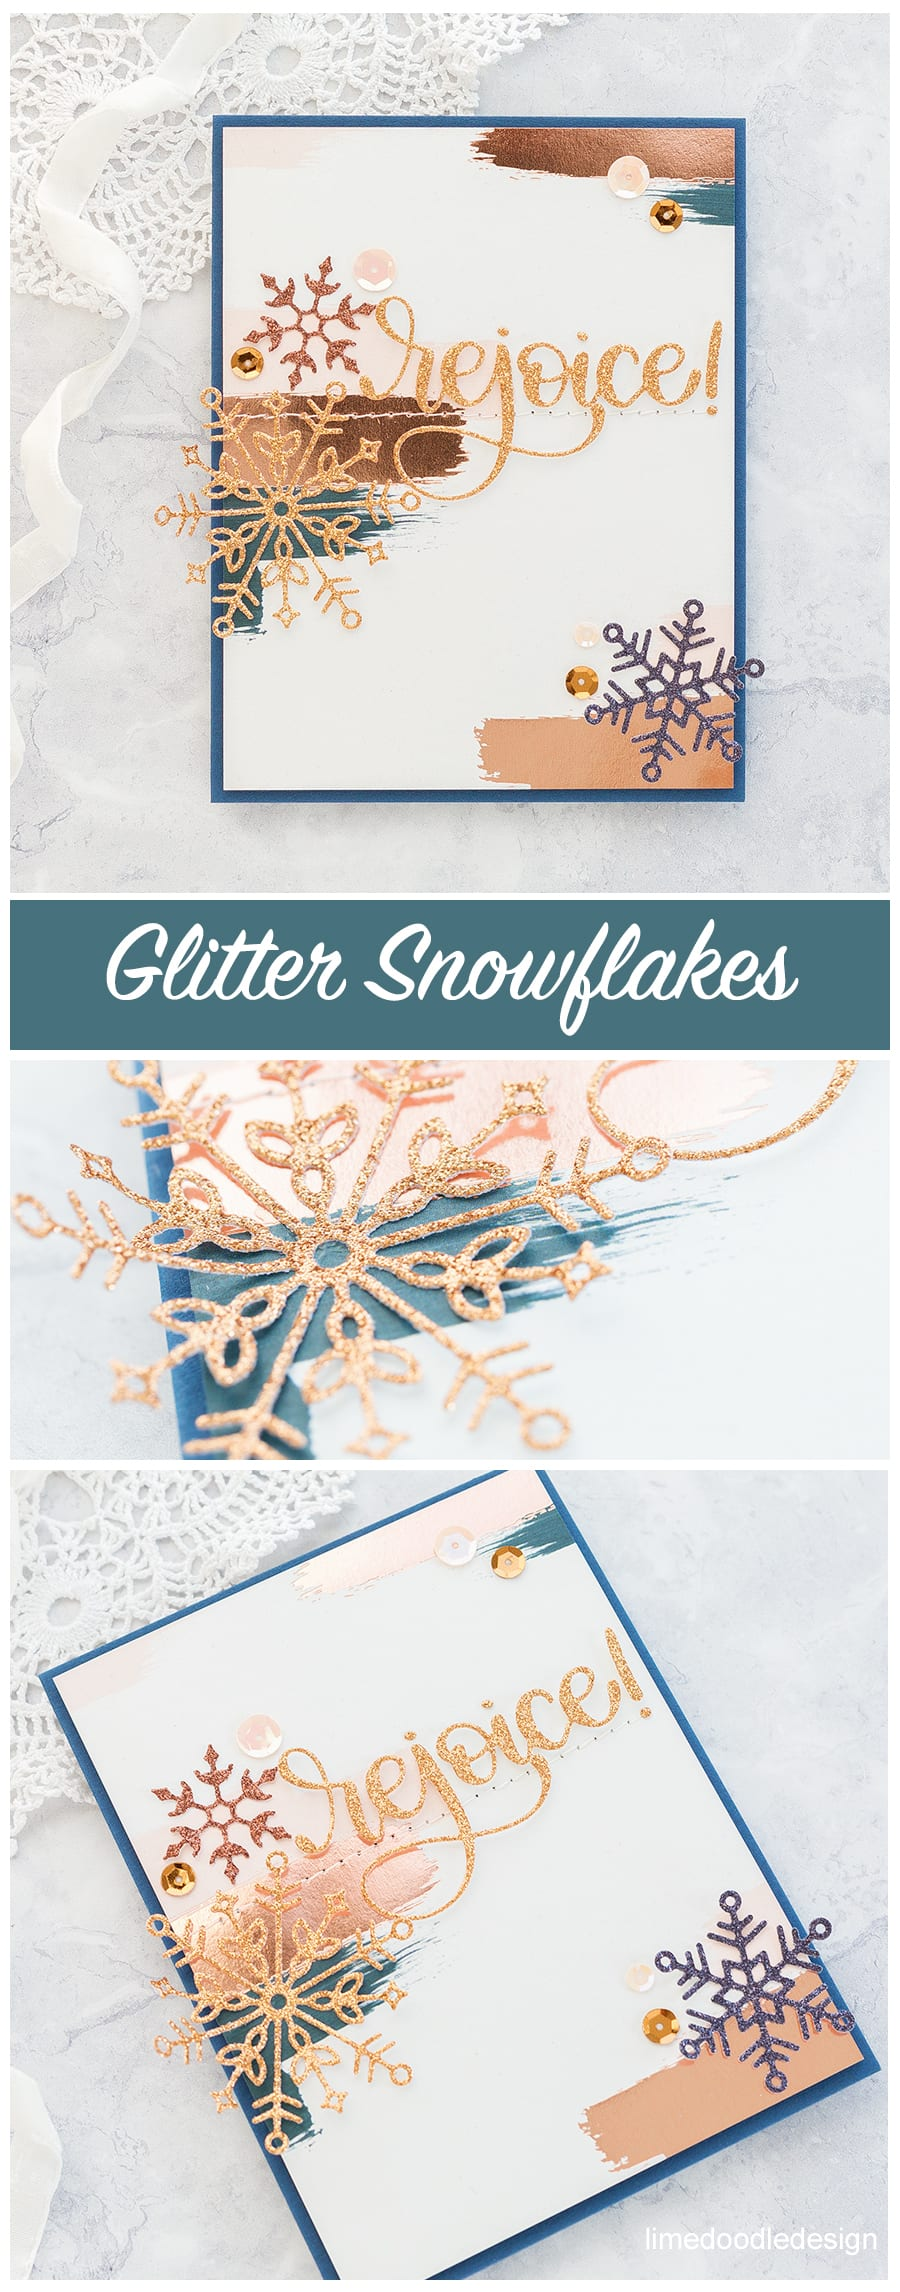 Glitter Snowflakes two ways - two handmade Holiday cards using new dies from Simon Says Stamp's DieCember release. Find out more here: https://limedoodledesign.com/2017/12/rejoice-simon-says-stamp-diecember-blog-hop/